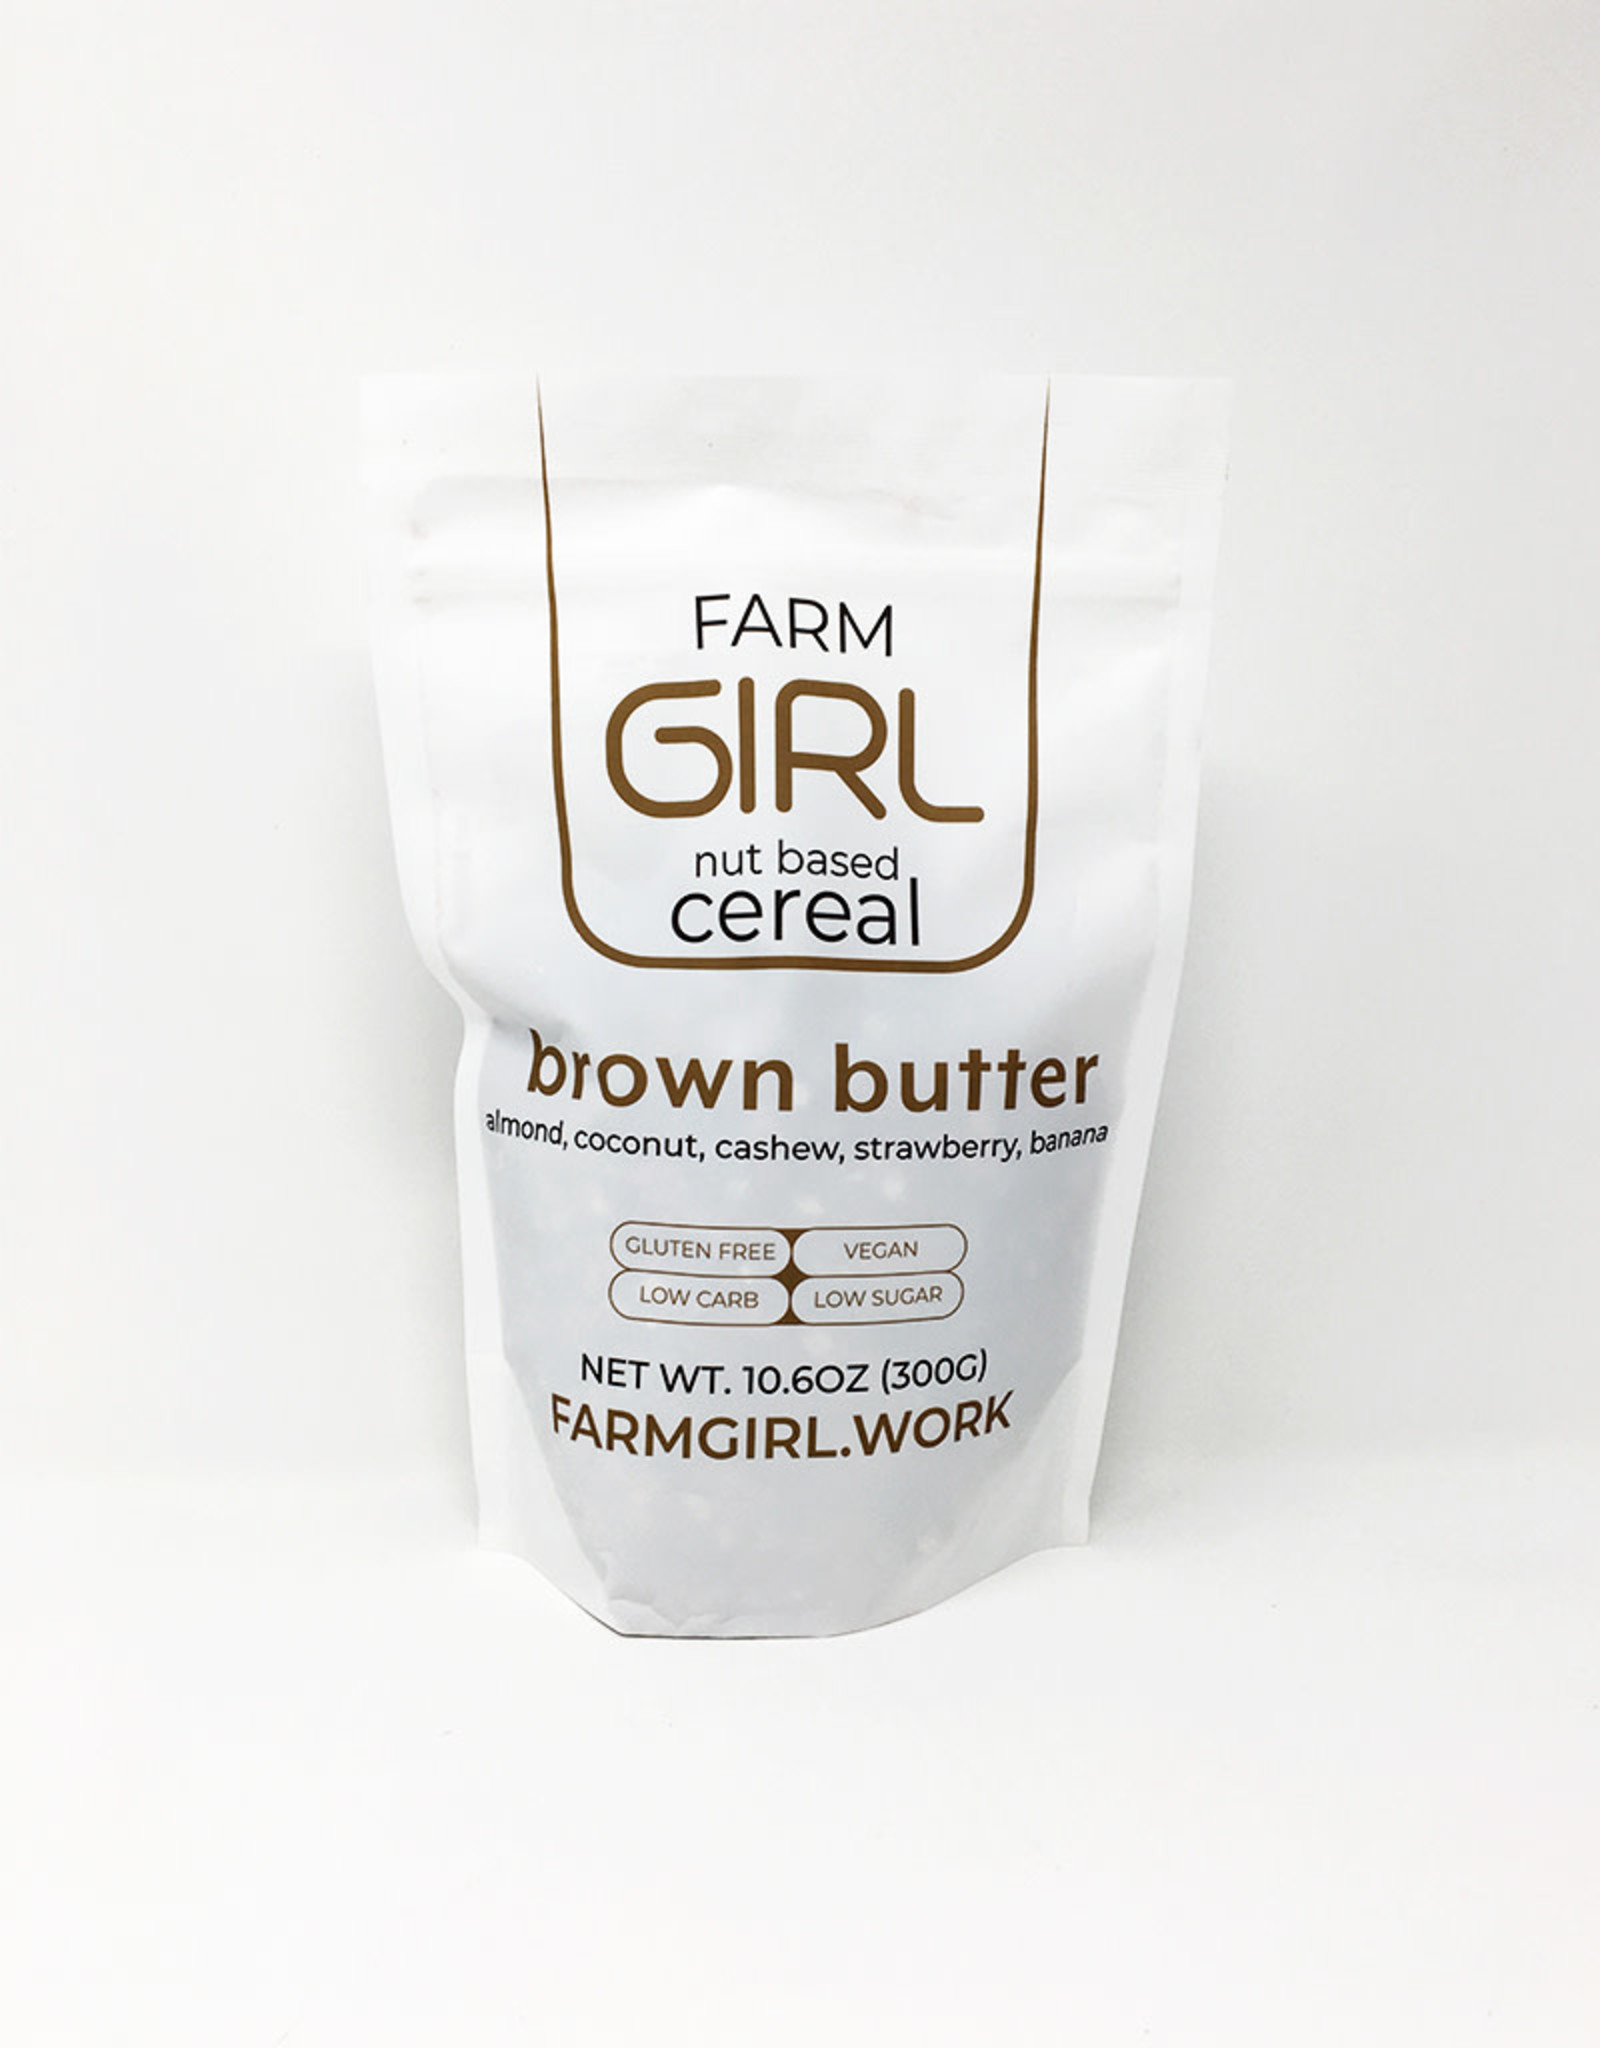 Farm Girl Farm Girl - Brown Butter Ontario Strawberry, Raspberry, & Banana Crisp (300g)